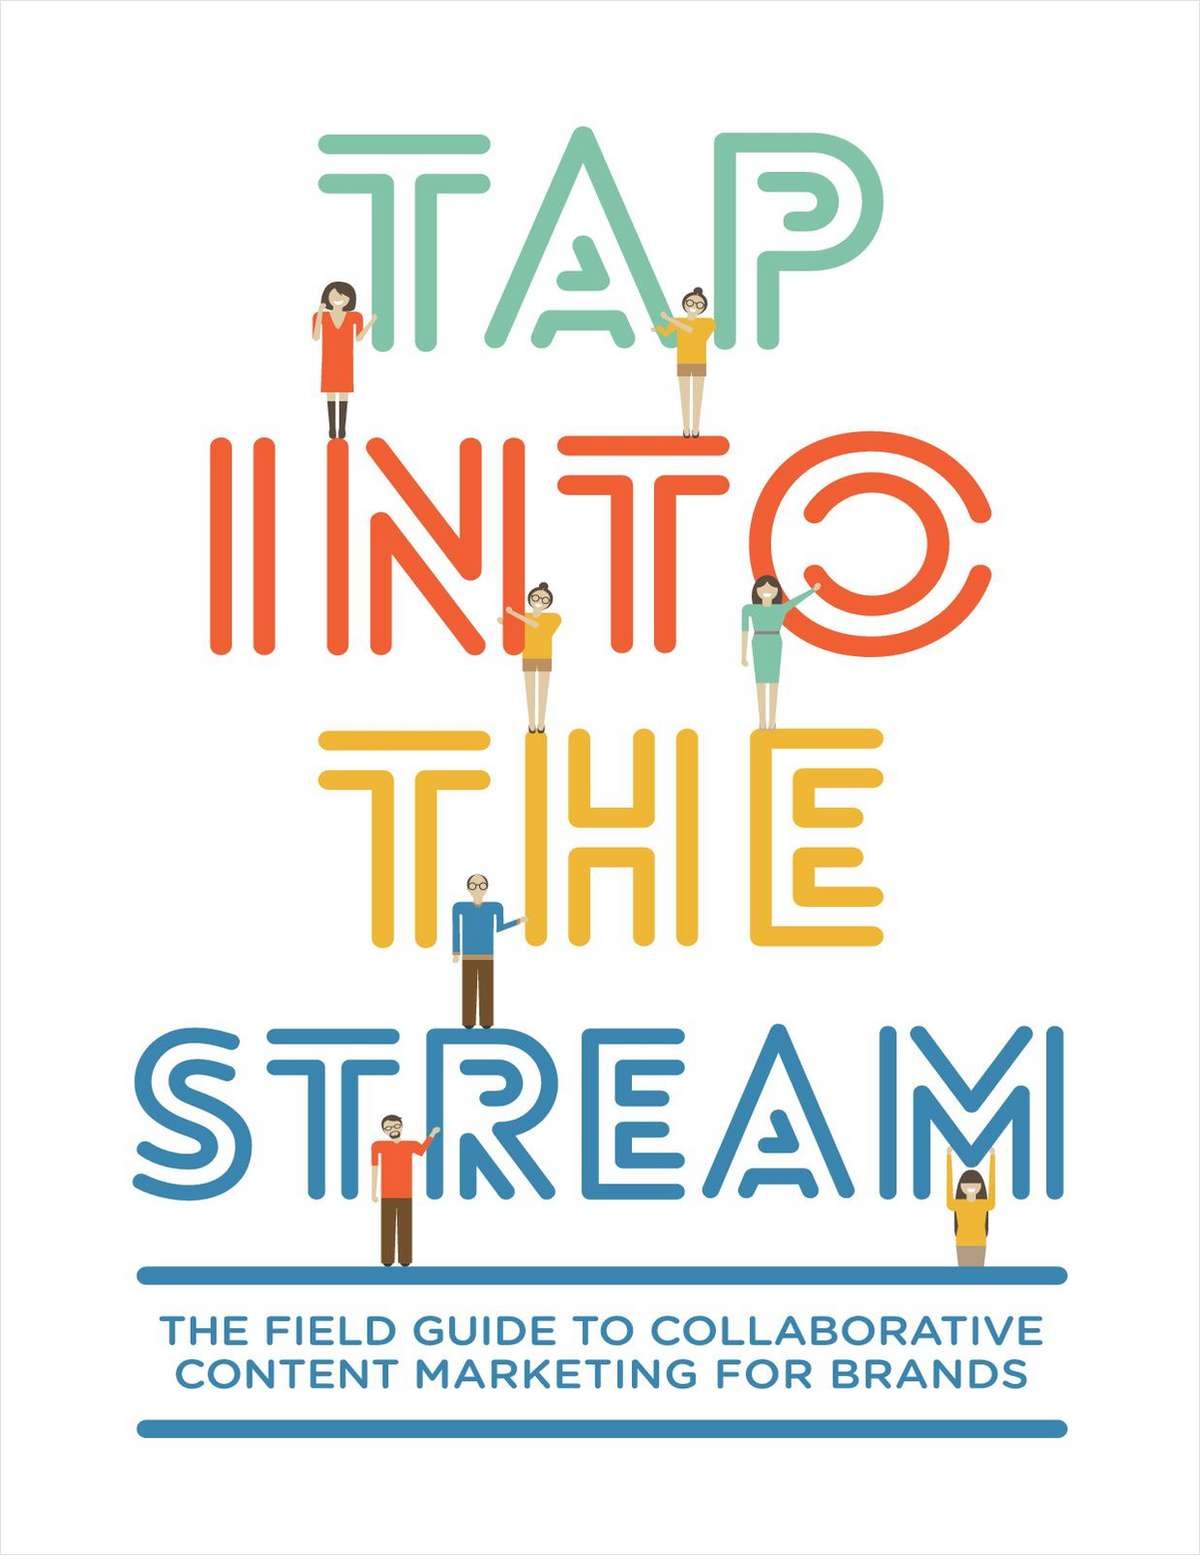 The Field Guide to Collaborative Content Marketing for Brands